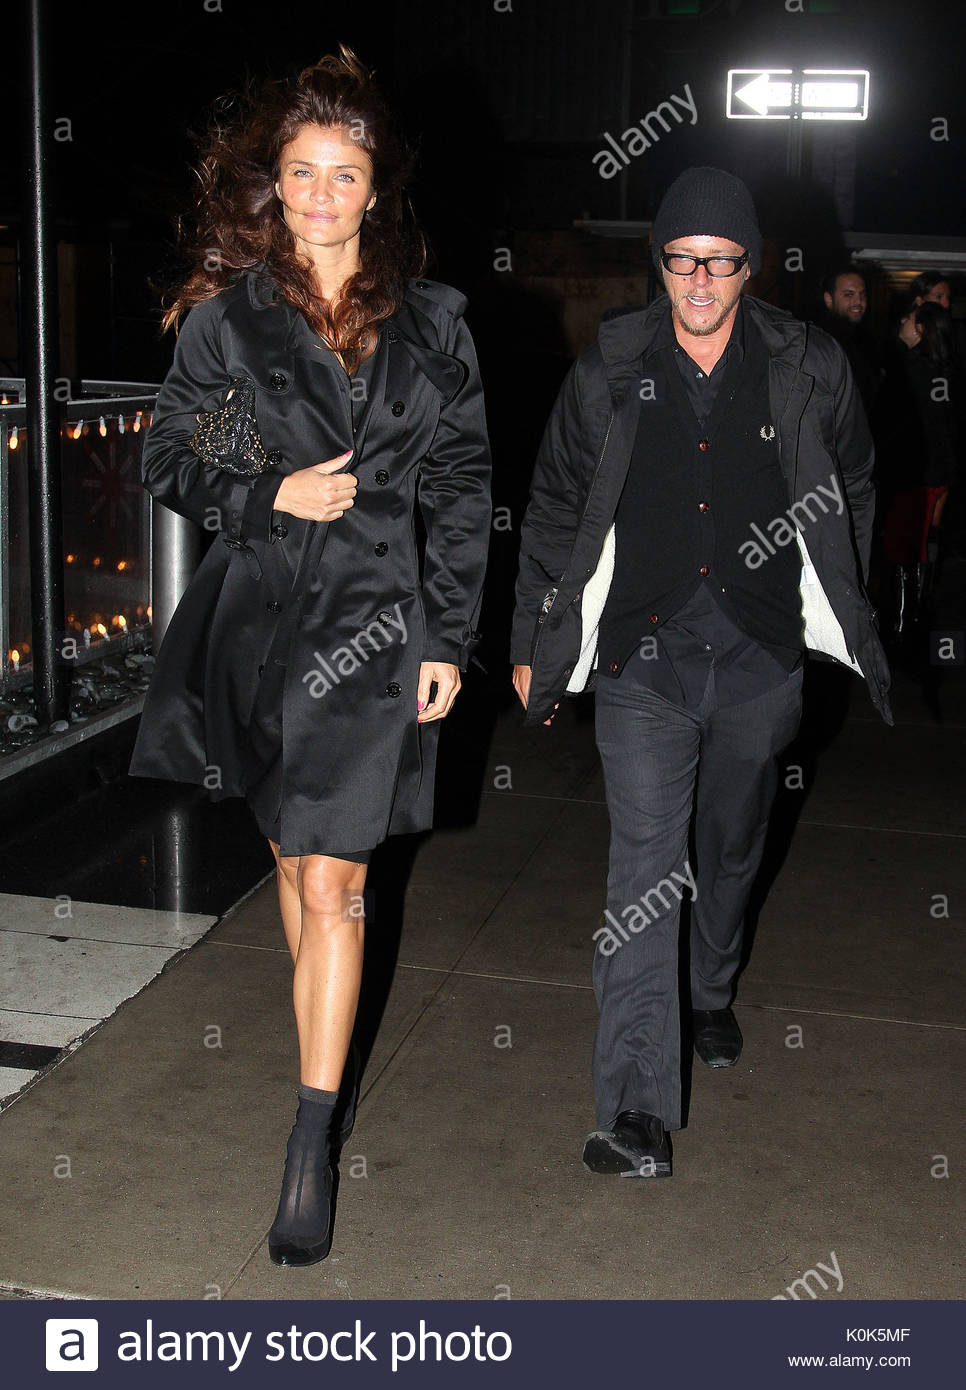 interpols paul banks dating helena christensen He is best known as the lead vocalist, lyricist, and guitarist of the rock band interpol banks paul banks to join helena christensen described banks.